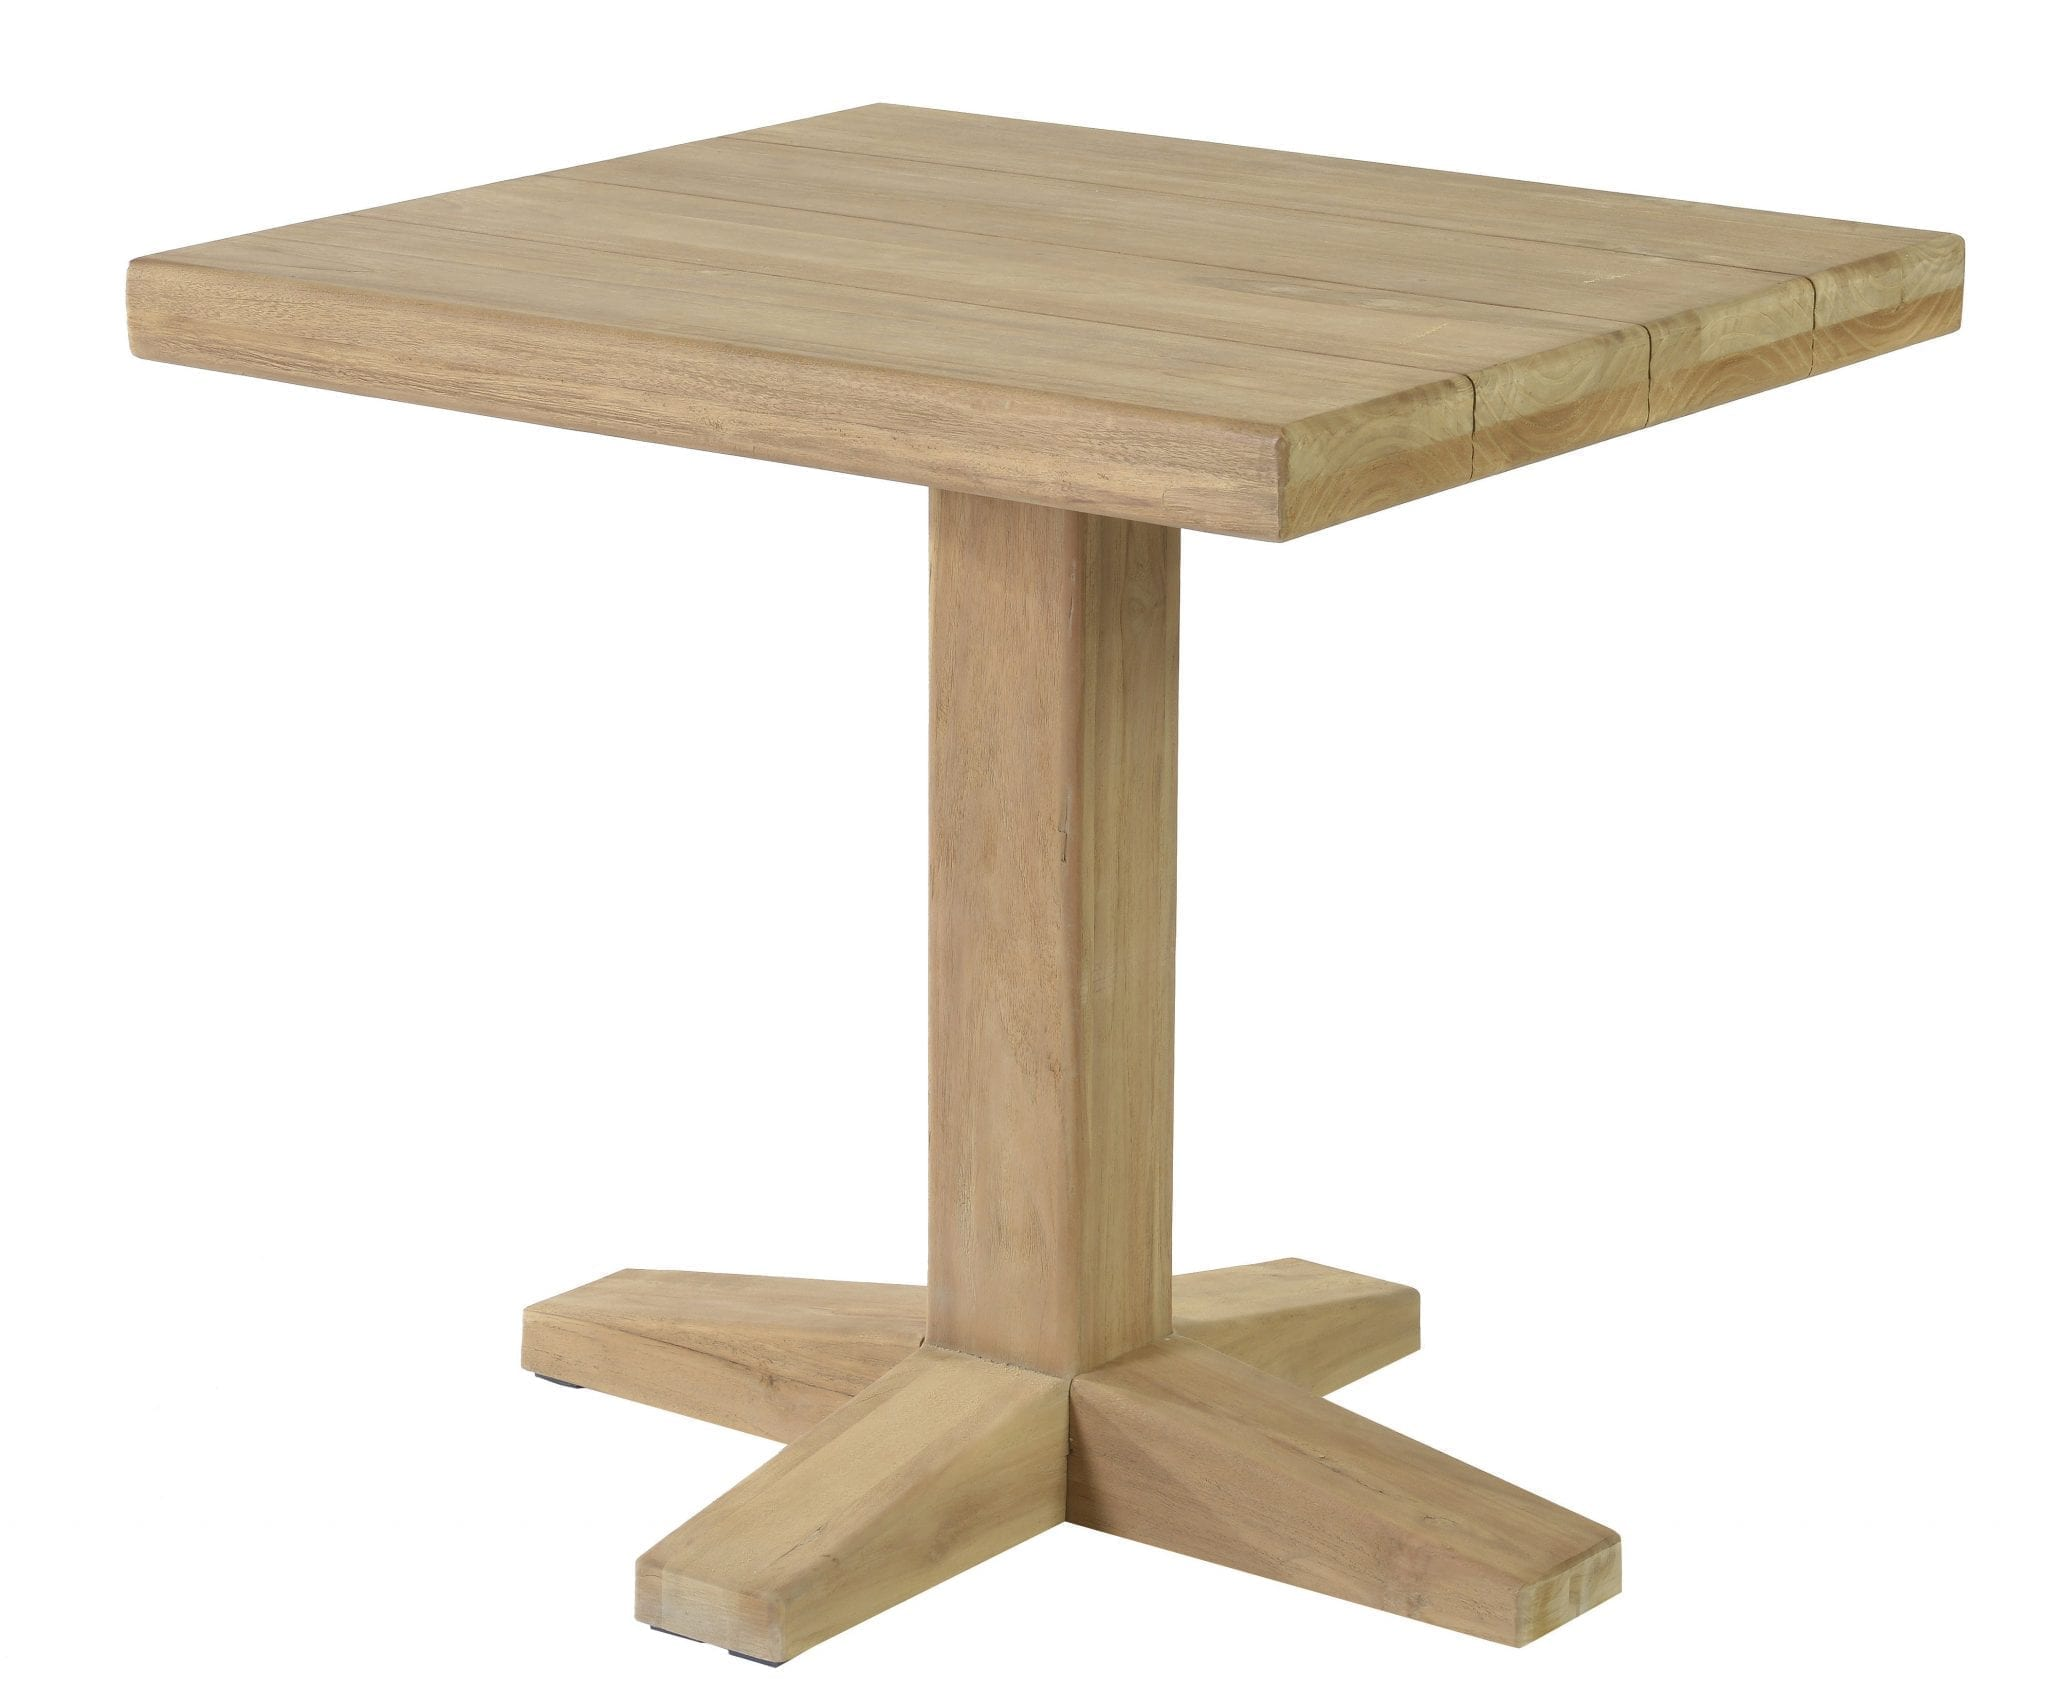 Bruce table 70x80x65 | Max & Luuk